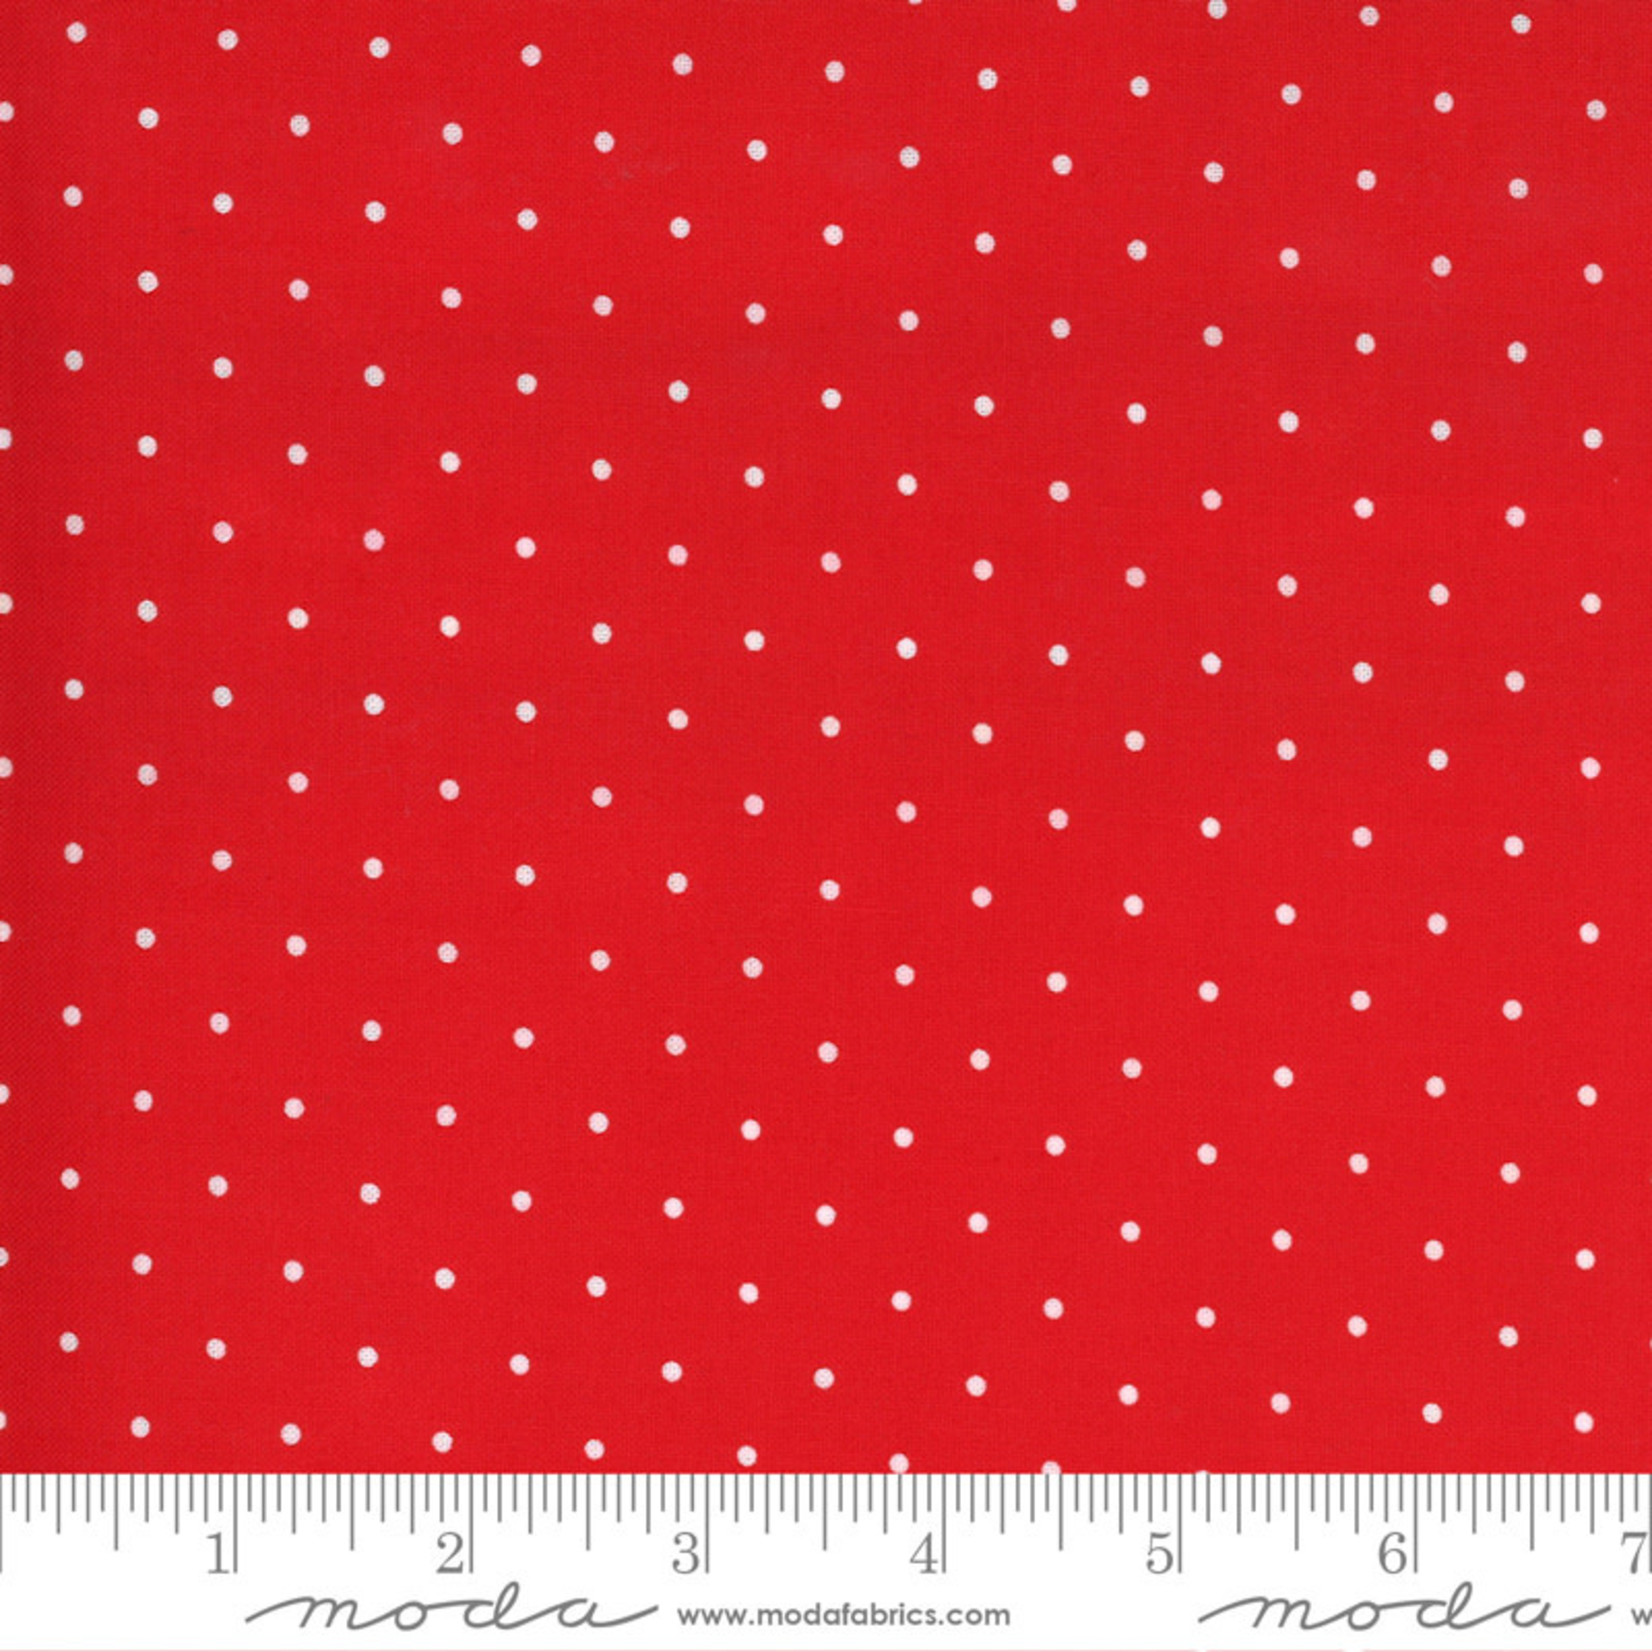 Bonnie & Camille Sunday Stroll, Sweet Dot, Red 55226 12 $0.20 per cm or $20/m